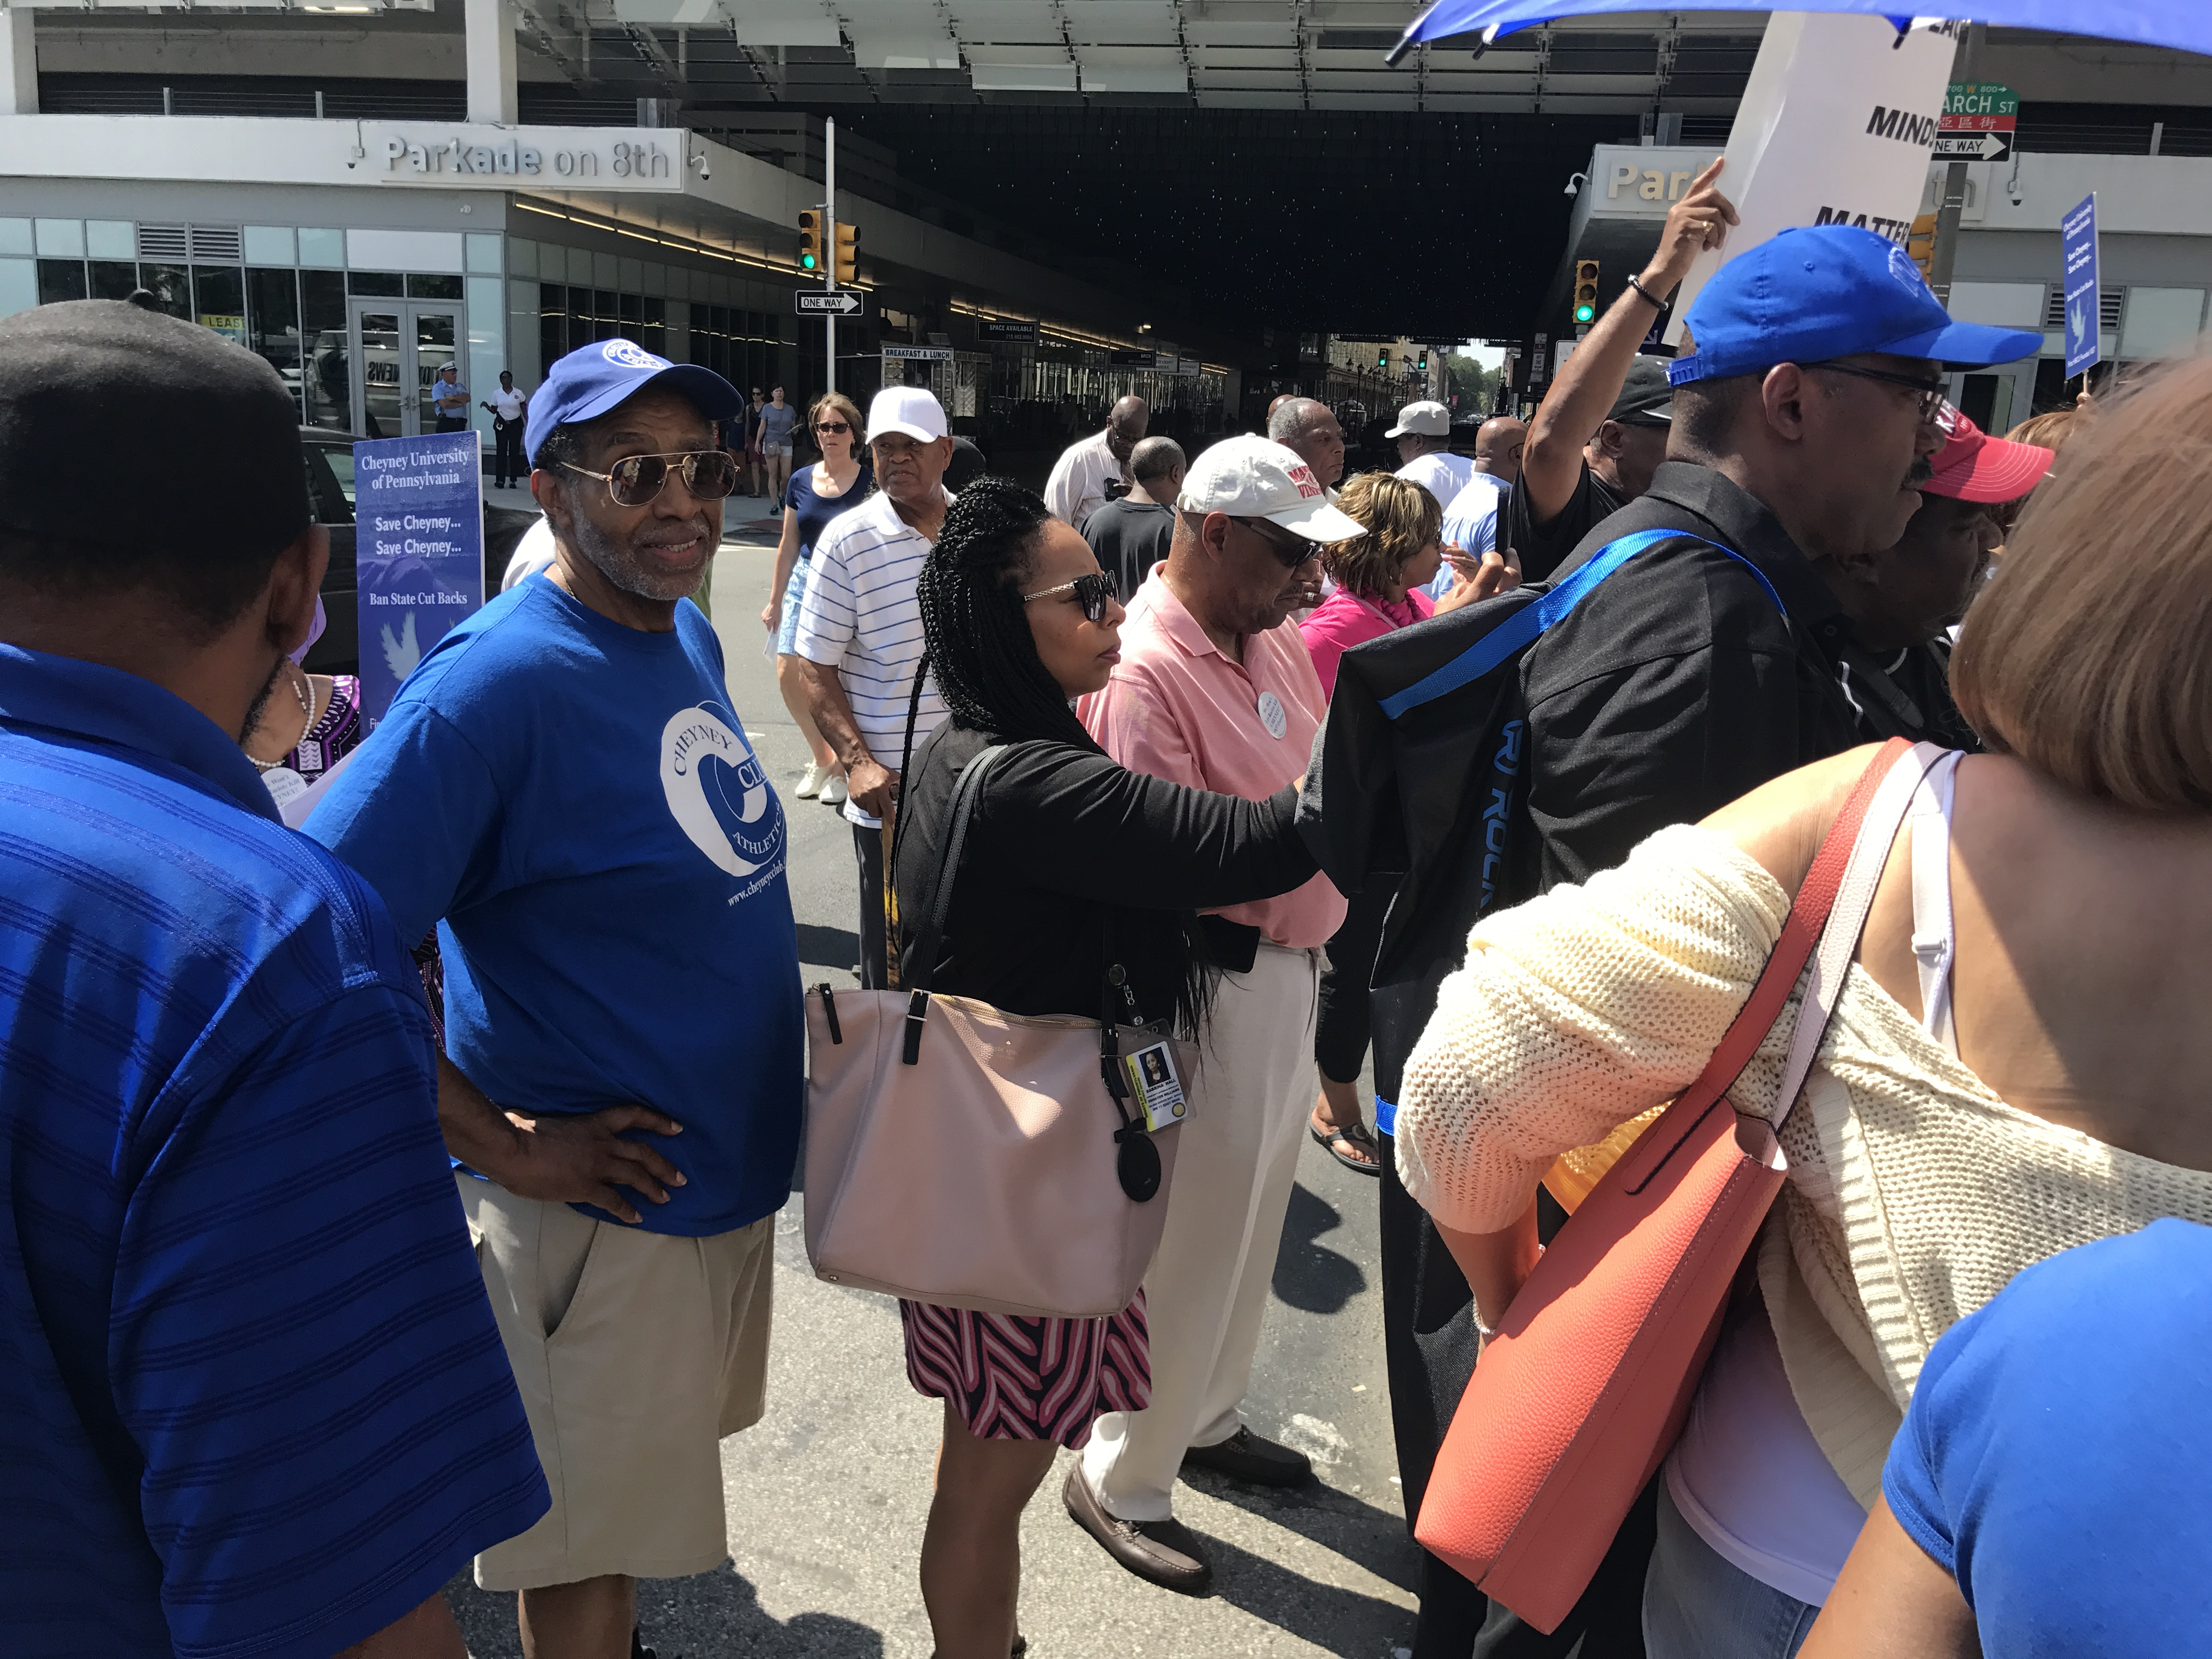 John Lay was among the Cheyney University grads and alums who gathered outside Gov. Wolfe´s office on Tuesday to draw attention to their need for immediate attention.